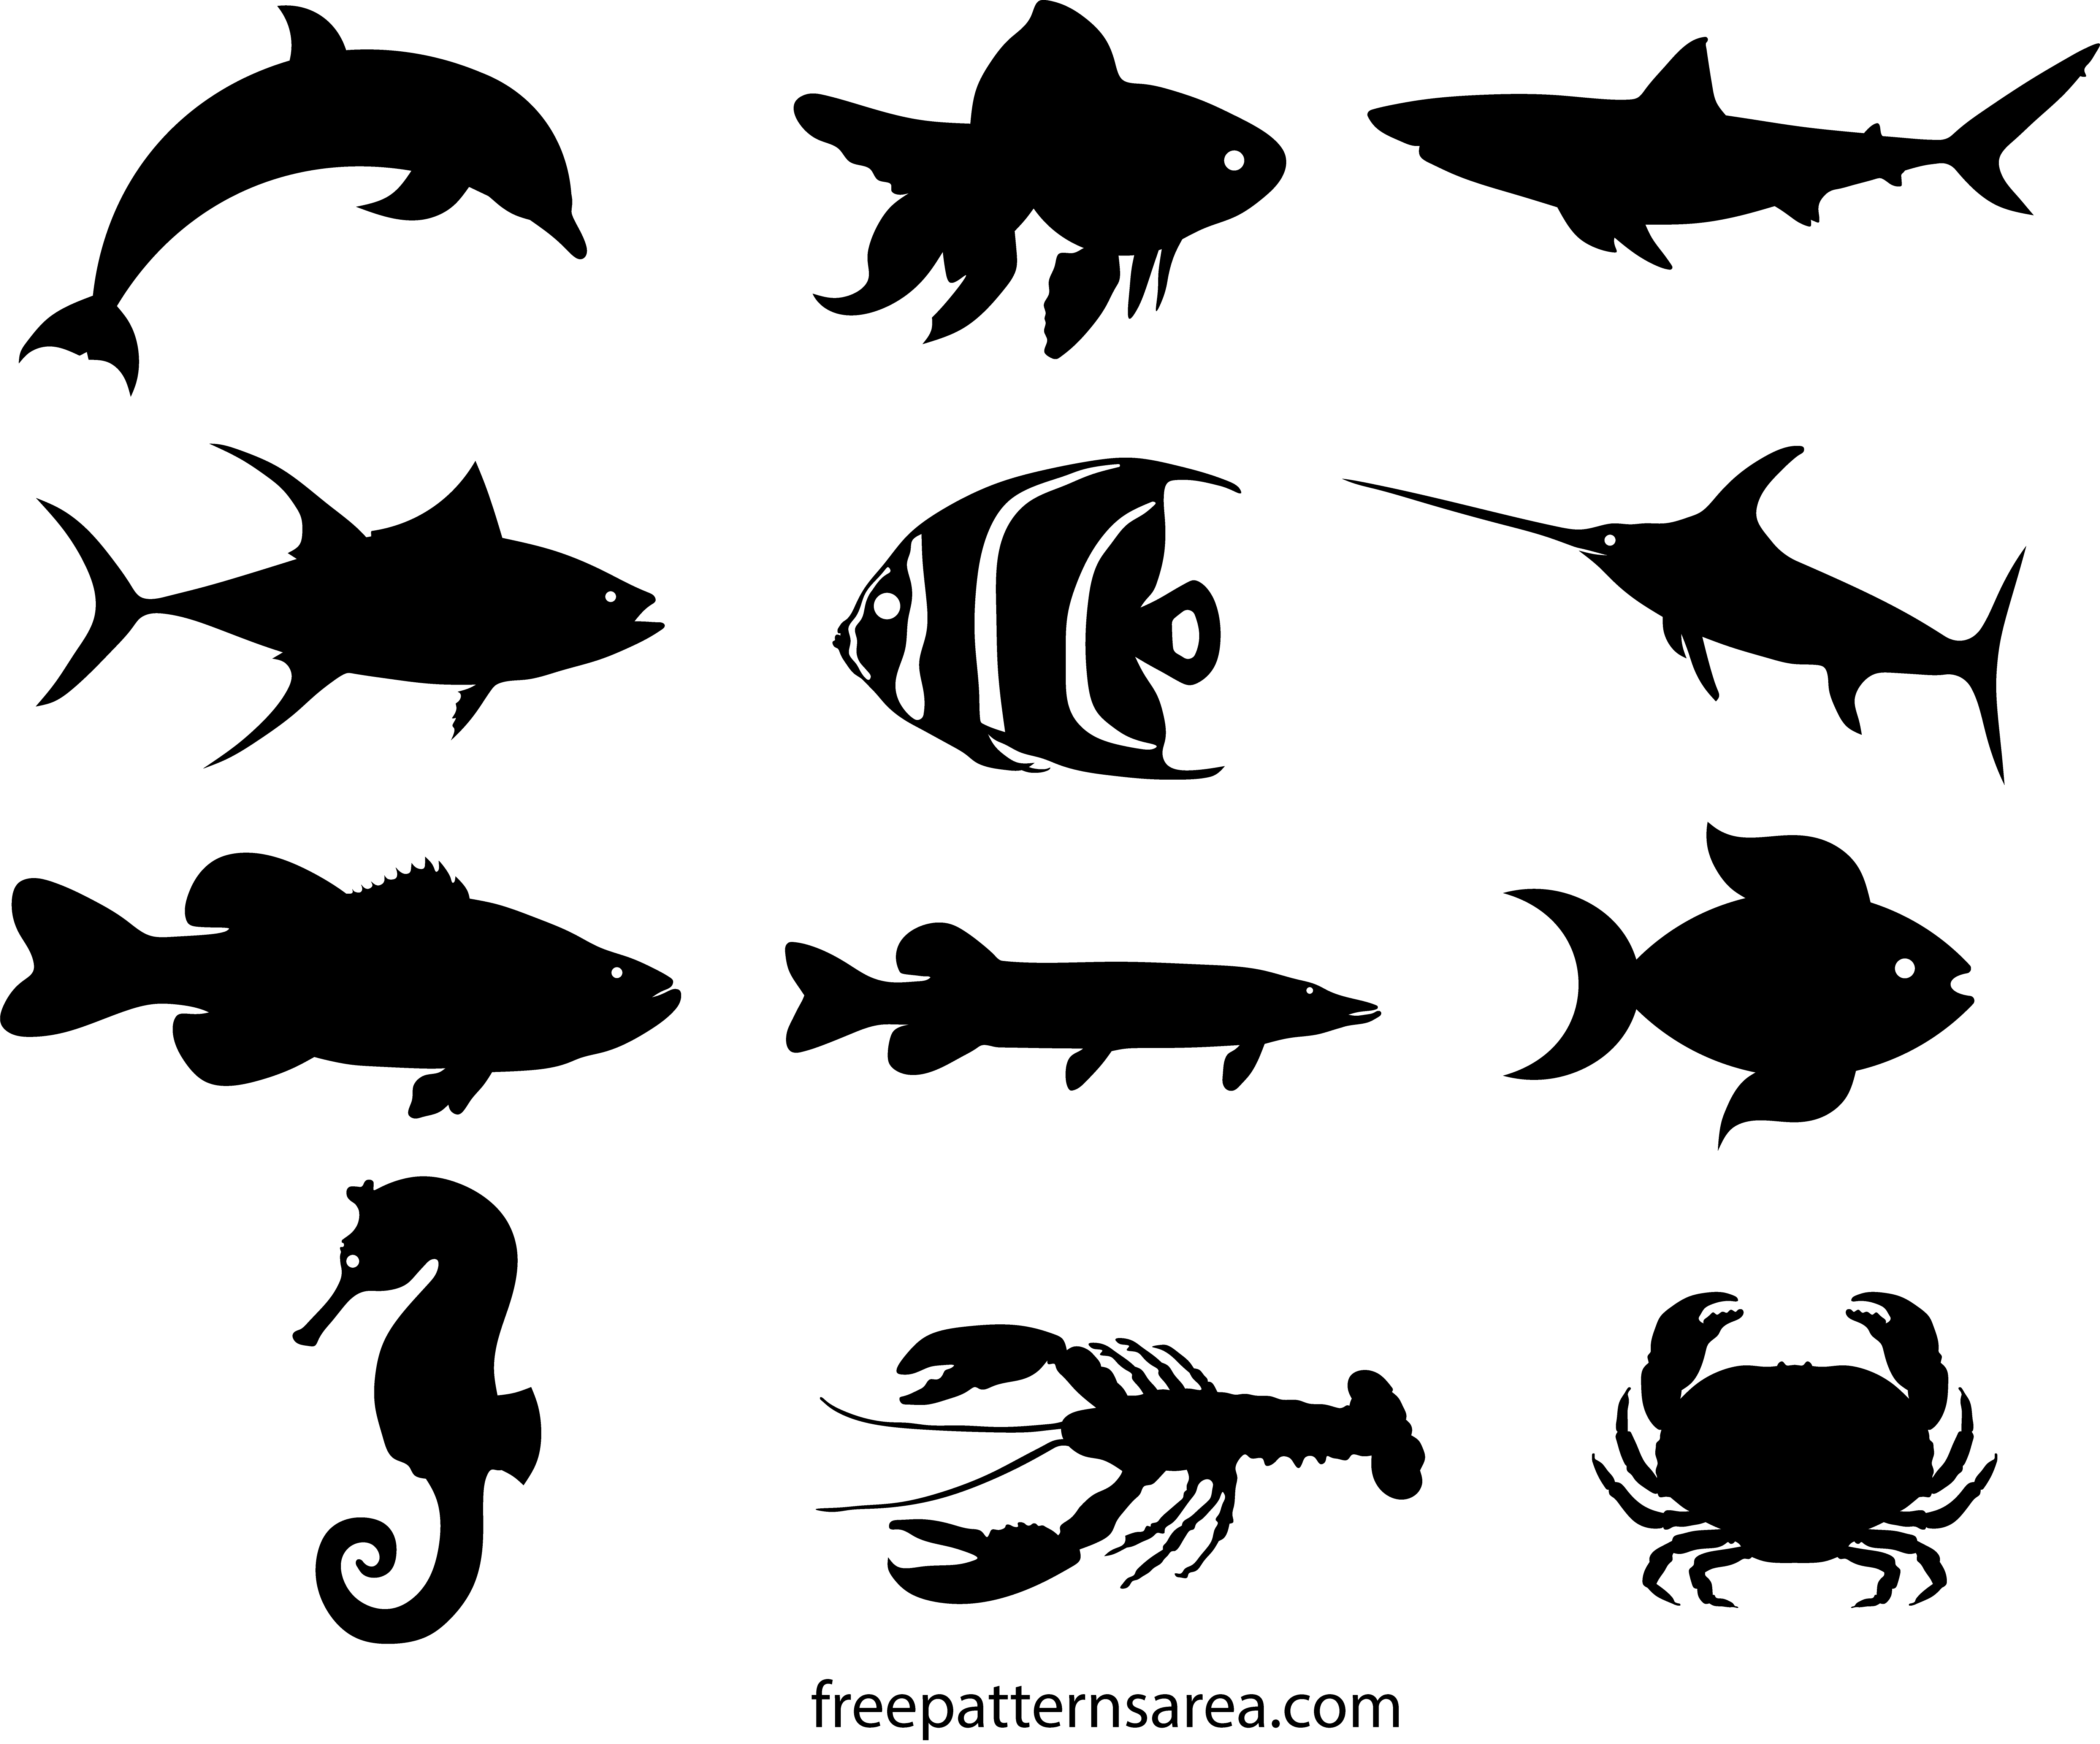 Fish Silhouette Vectors & Printable Templates